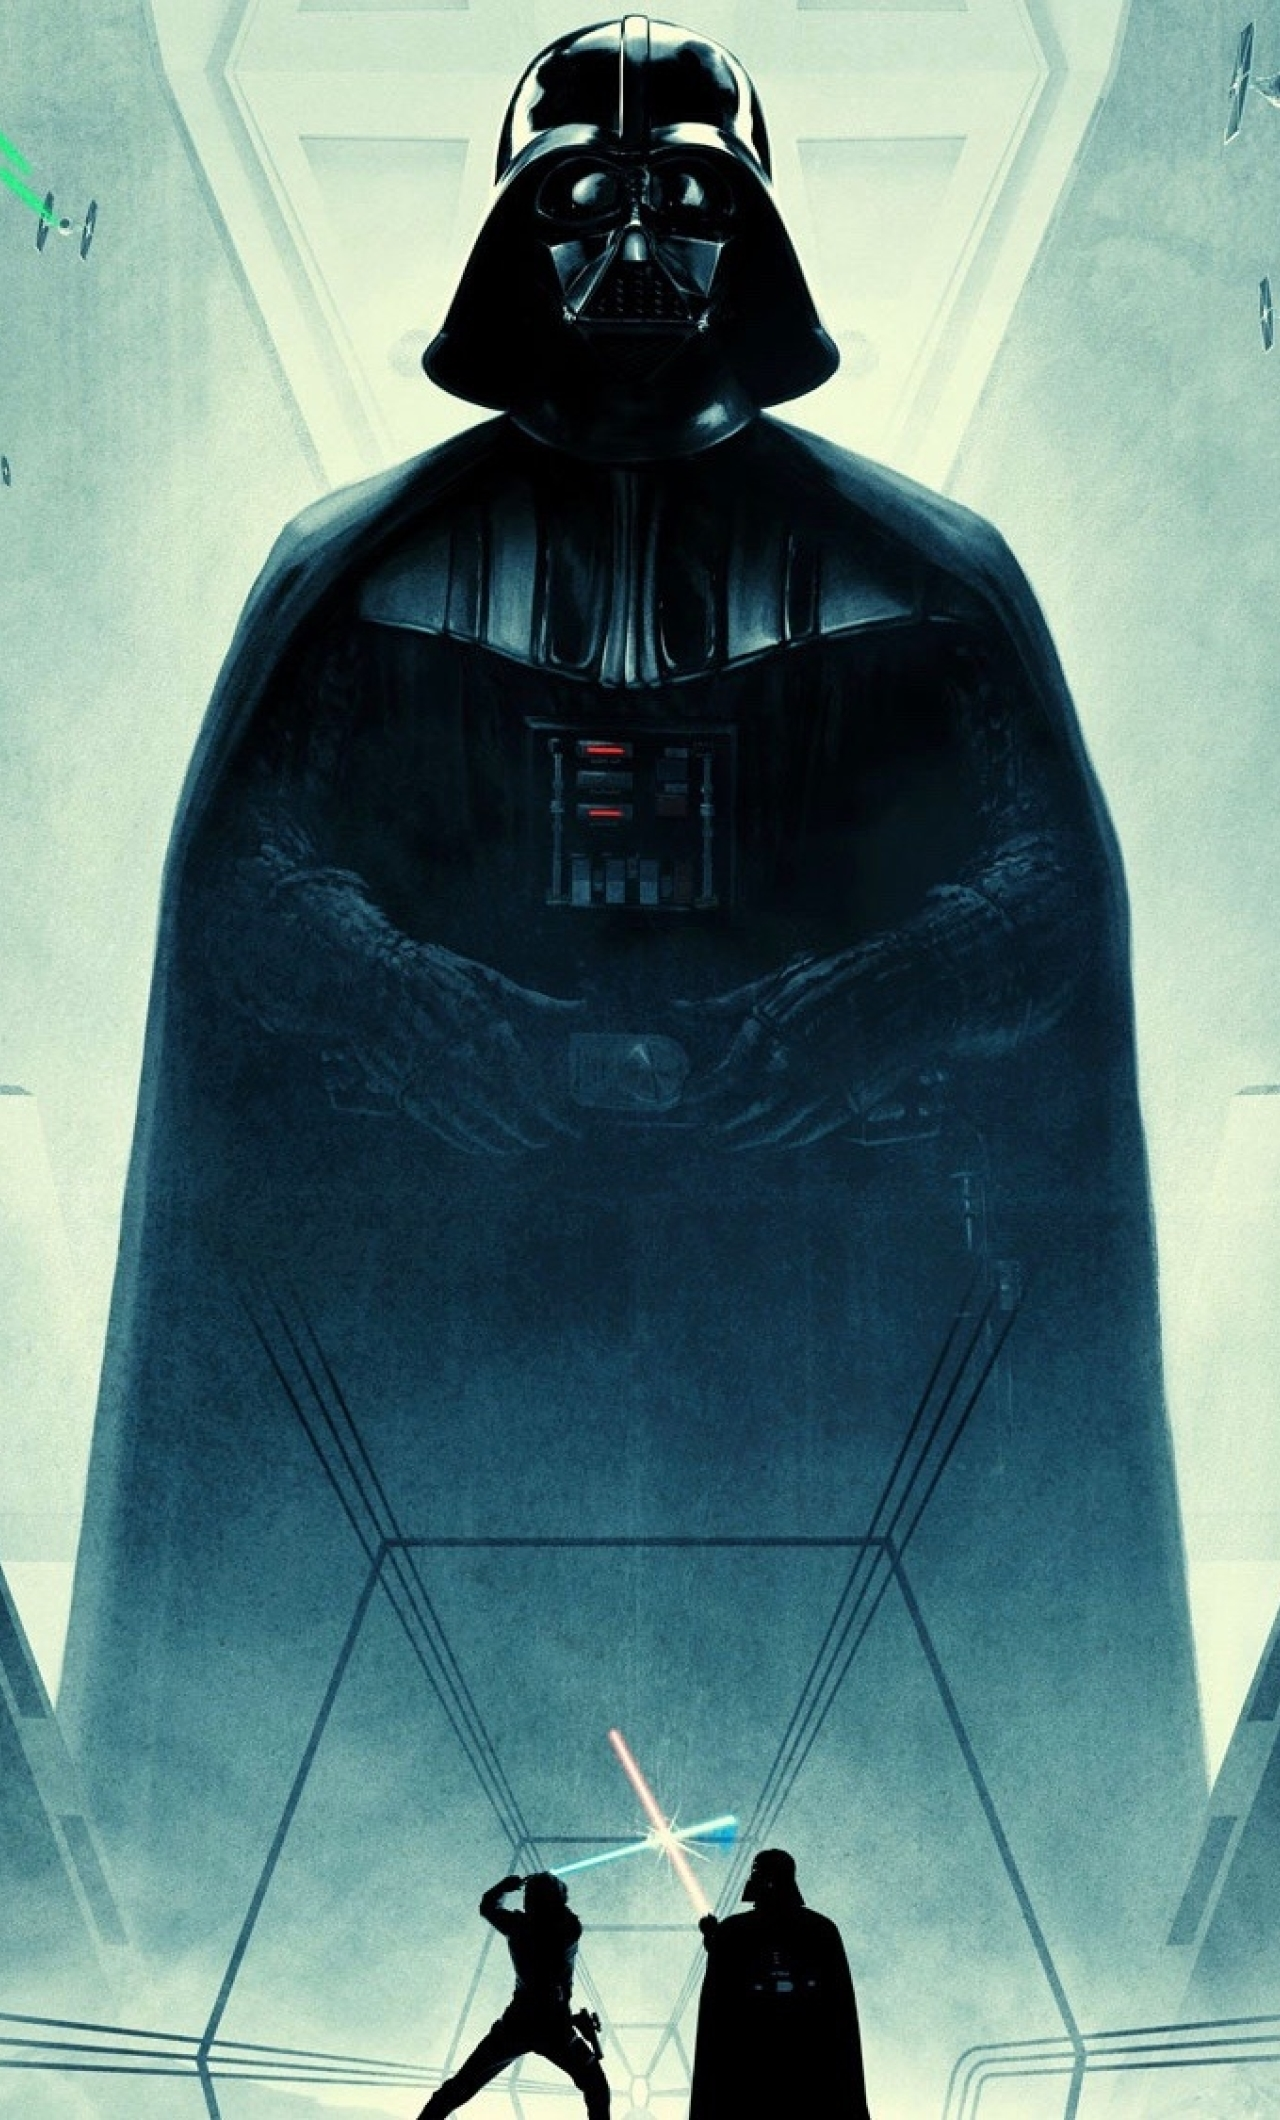 1280x2120 Star Wars Episode 5 The Empire Strikes Back Iphone 6 Plus Wallpaper Hd Movies 4k Wallpapers Images Photos And Background